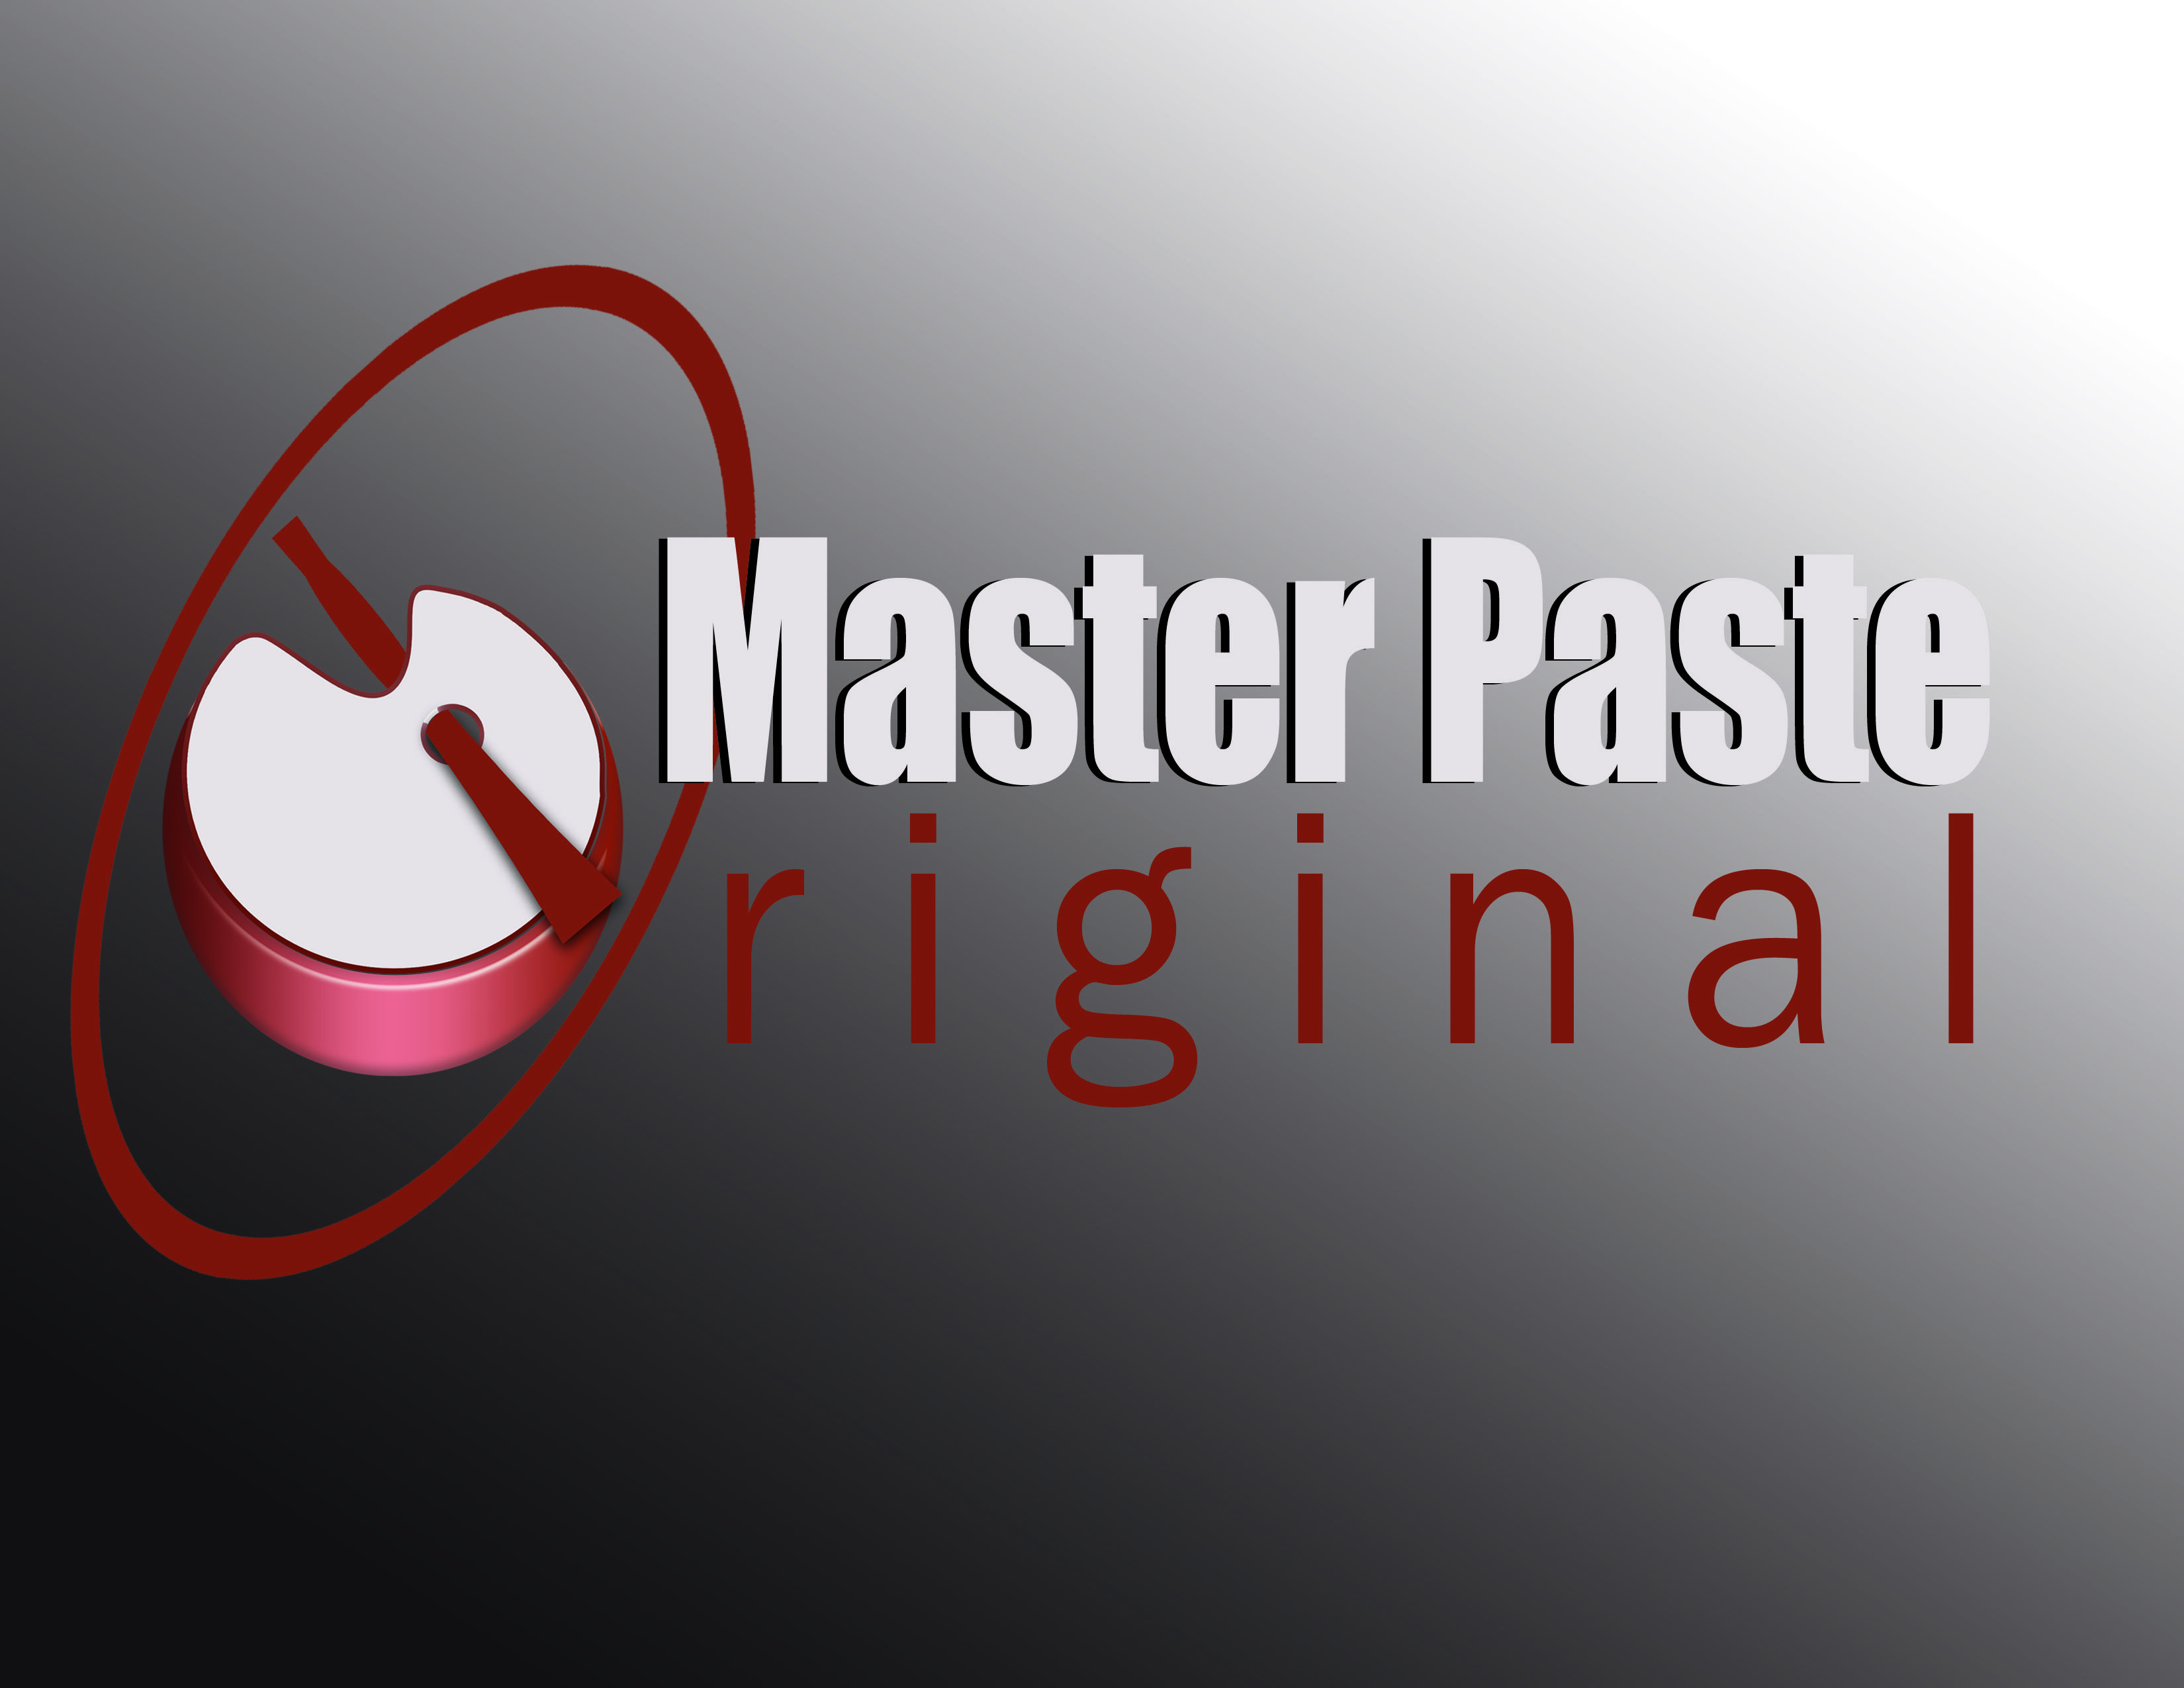 Logo Design by Alan Esclamado - Entry No. 32 in the Logo Design Contest Unique Logo Design Wanted for Master Paste Original™.